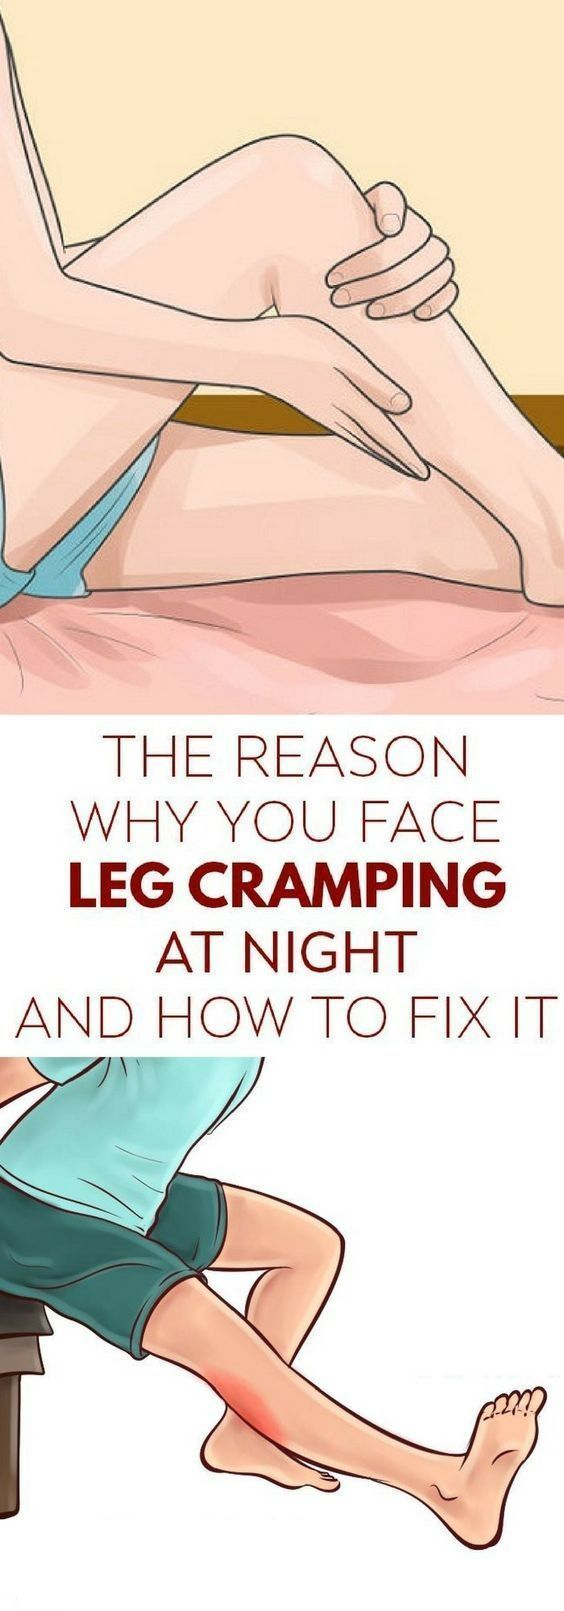 One of the most common health issues that many people face with every day are cramps. They are pretty painful and